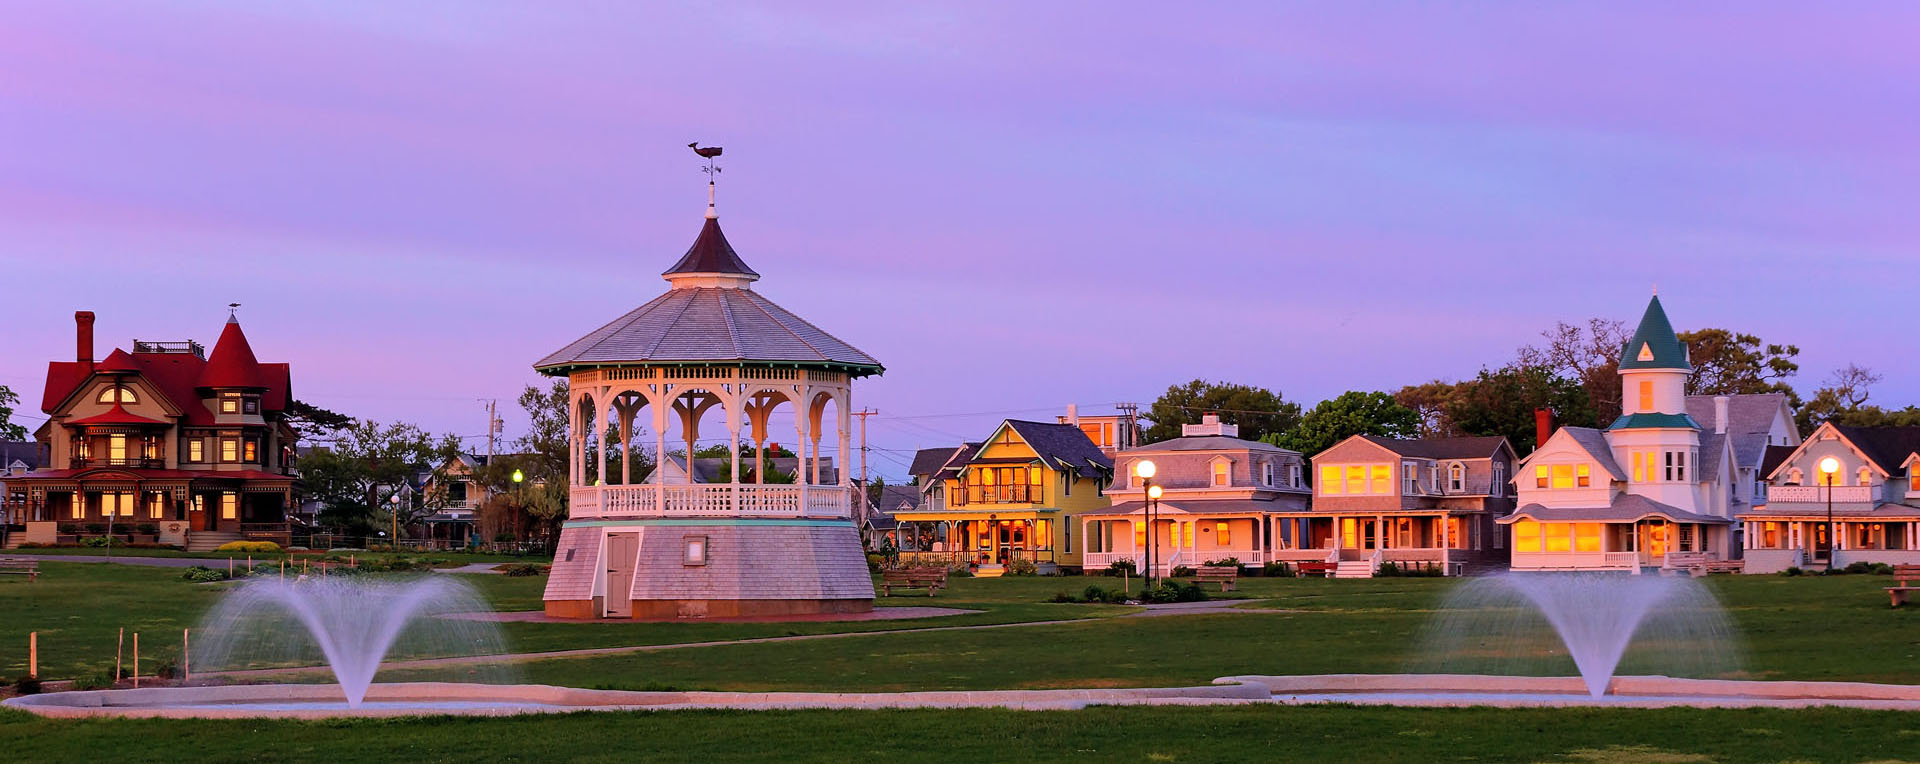 muslim singles in oak bluffs Recommendations for martha's vineyard nightlife find the best nightlife in martha's vineyard, ma 4139n 7062w  8 sea view ave ext, oak bluffs, ma.